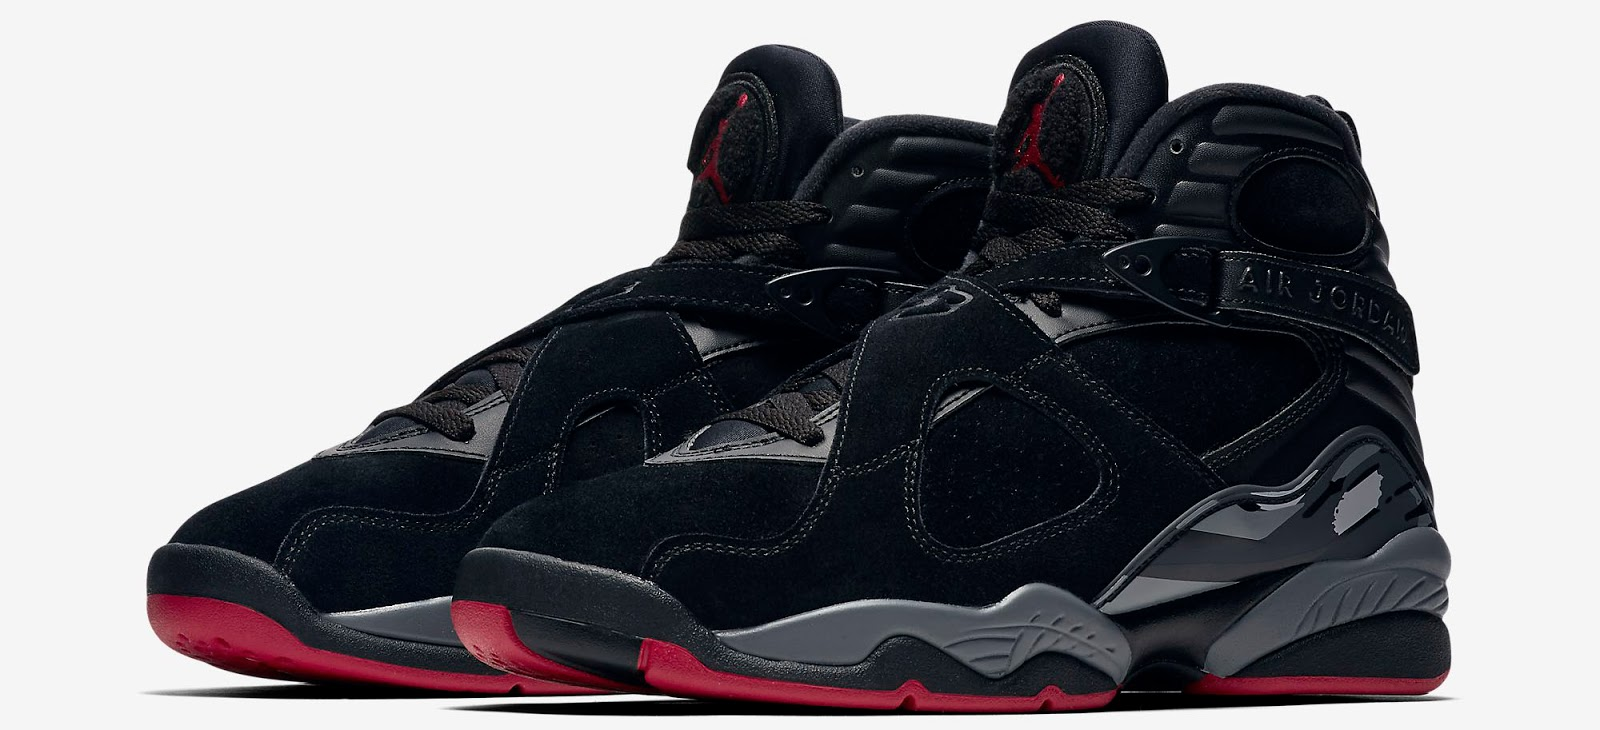 the best attitude e00e1 bce03 Inspired by an original Air Jordan 4, this Air Jordan 8 Retro is known as  the